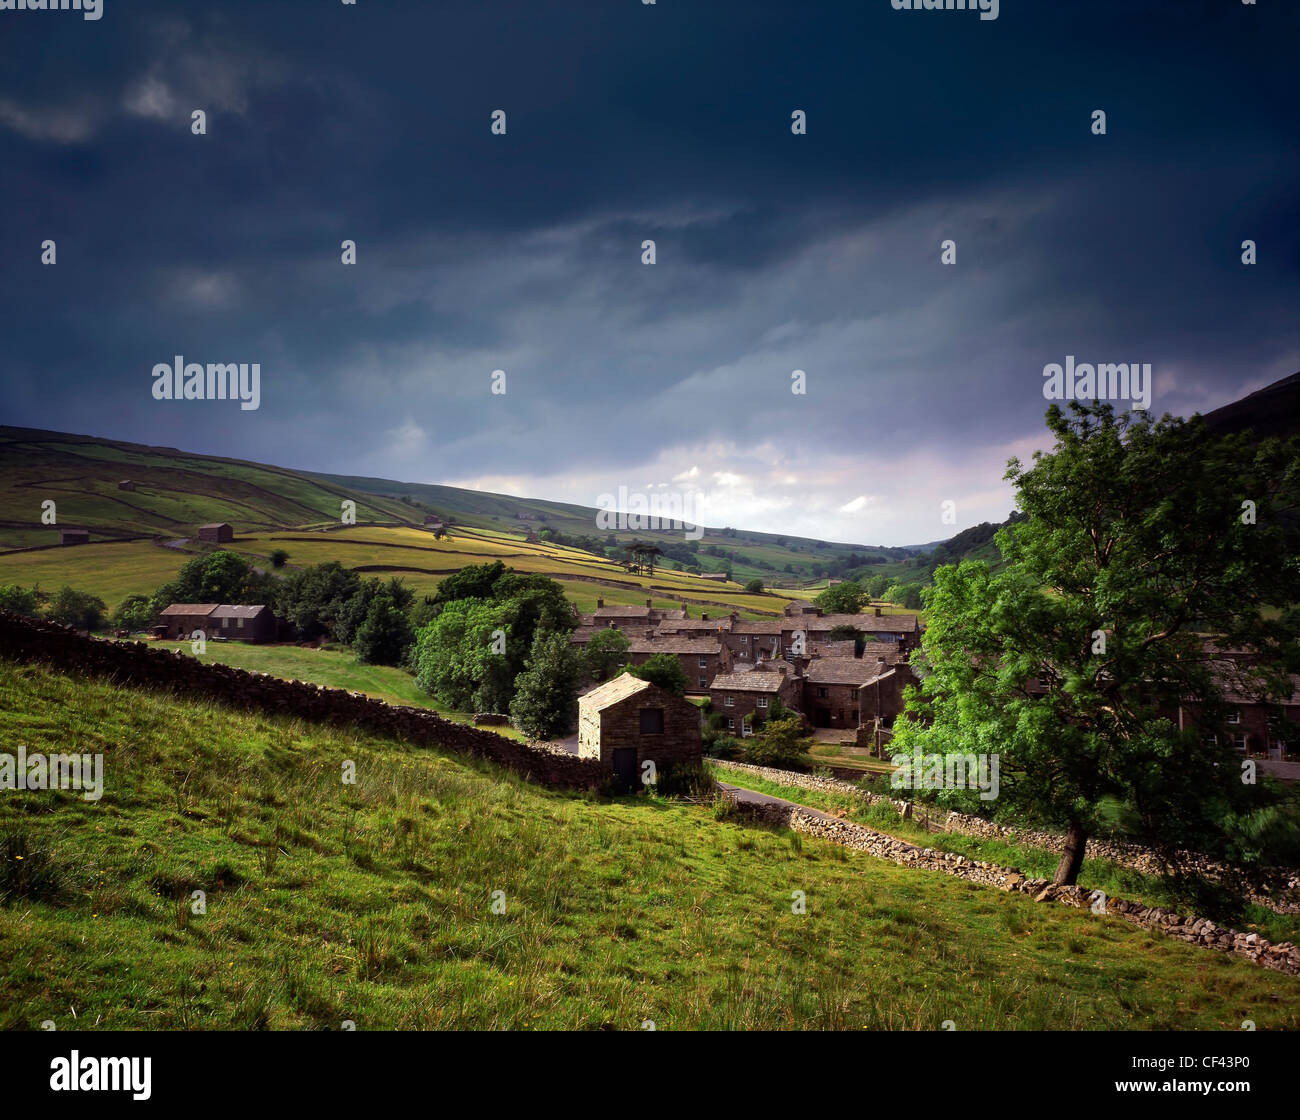 The small rural village of Thwaite in the Yorkshire Dales. - Stock Image